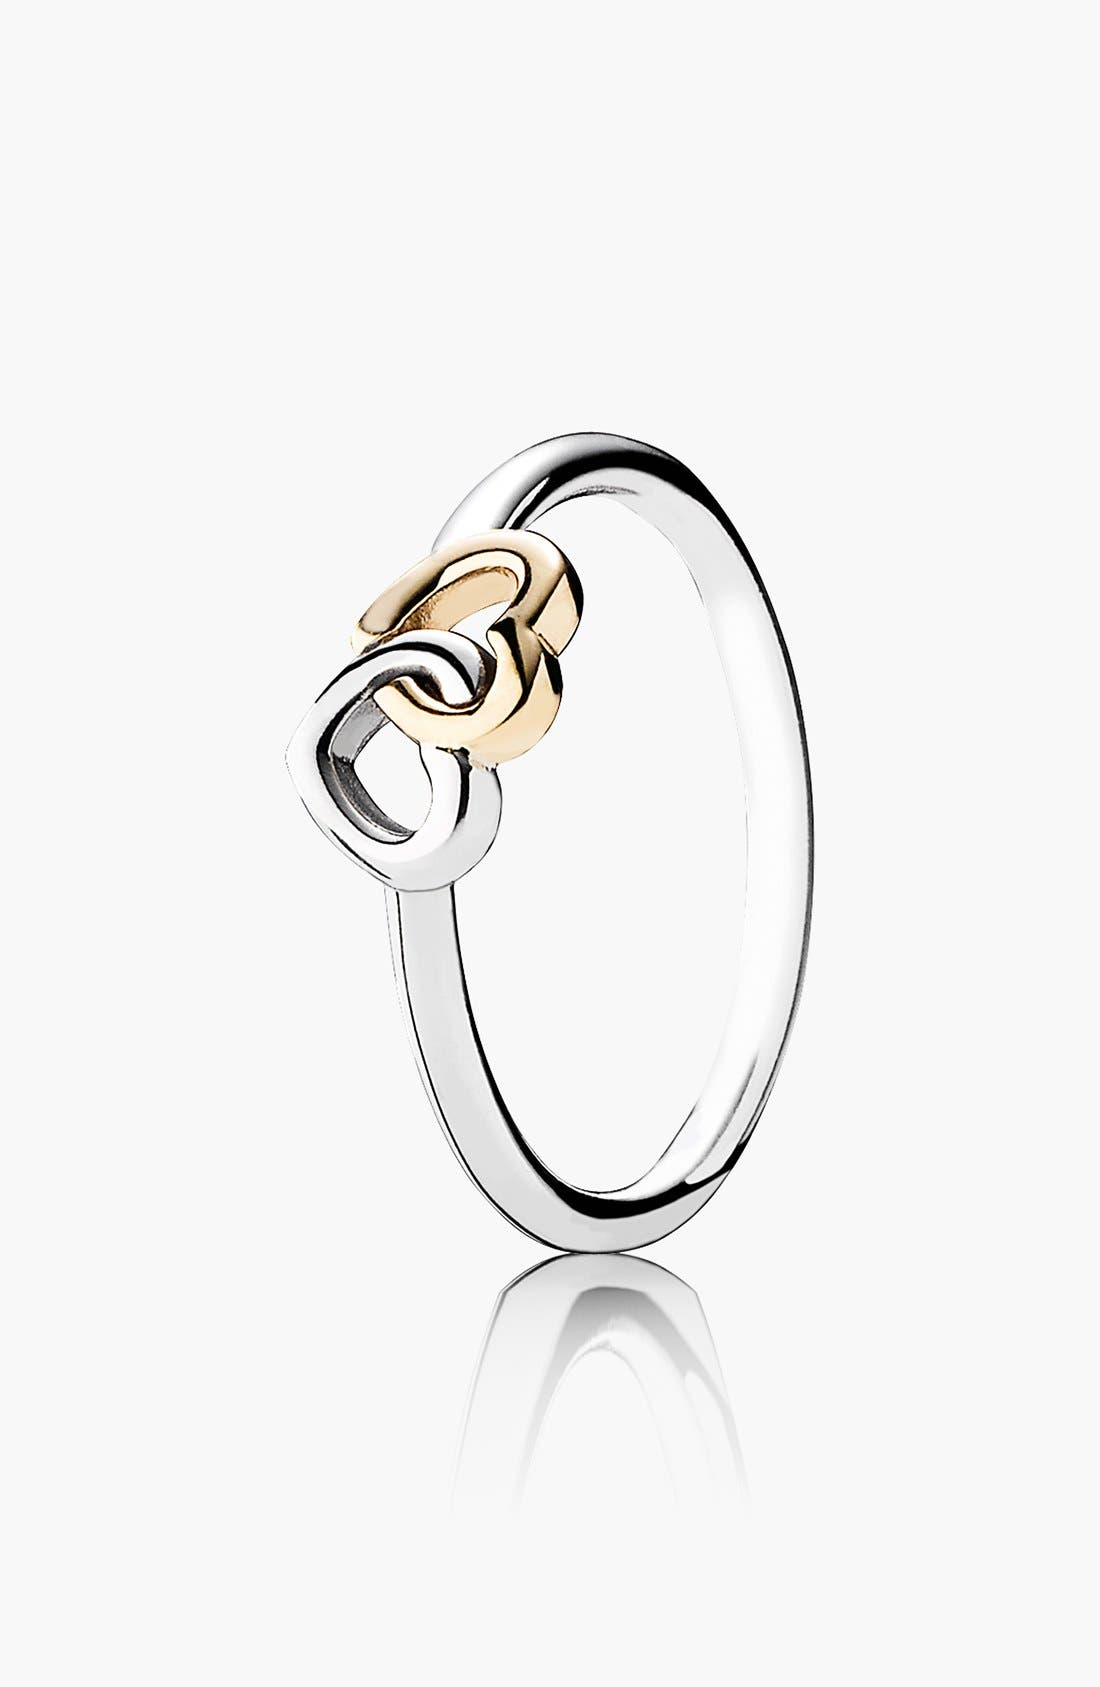 Alternate Image 1 Selected - PANDORA 'Heart to Heart' Ring